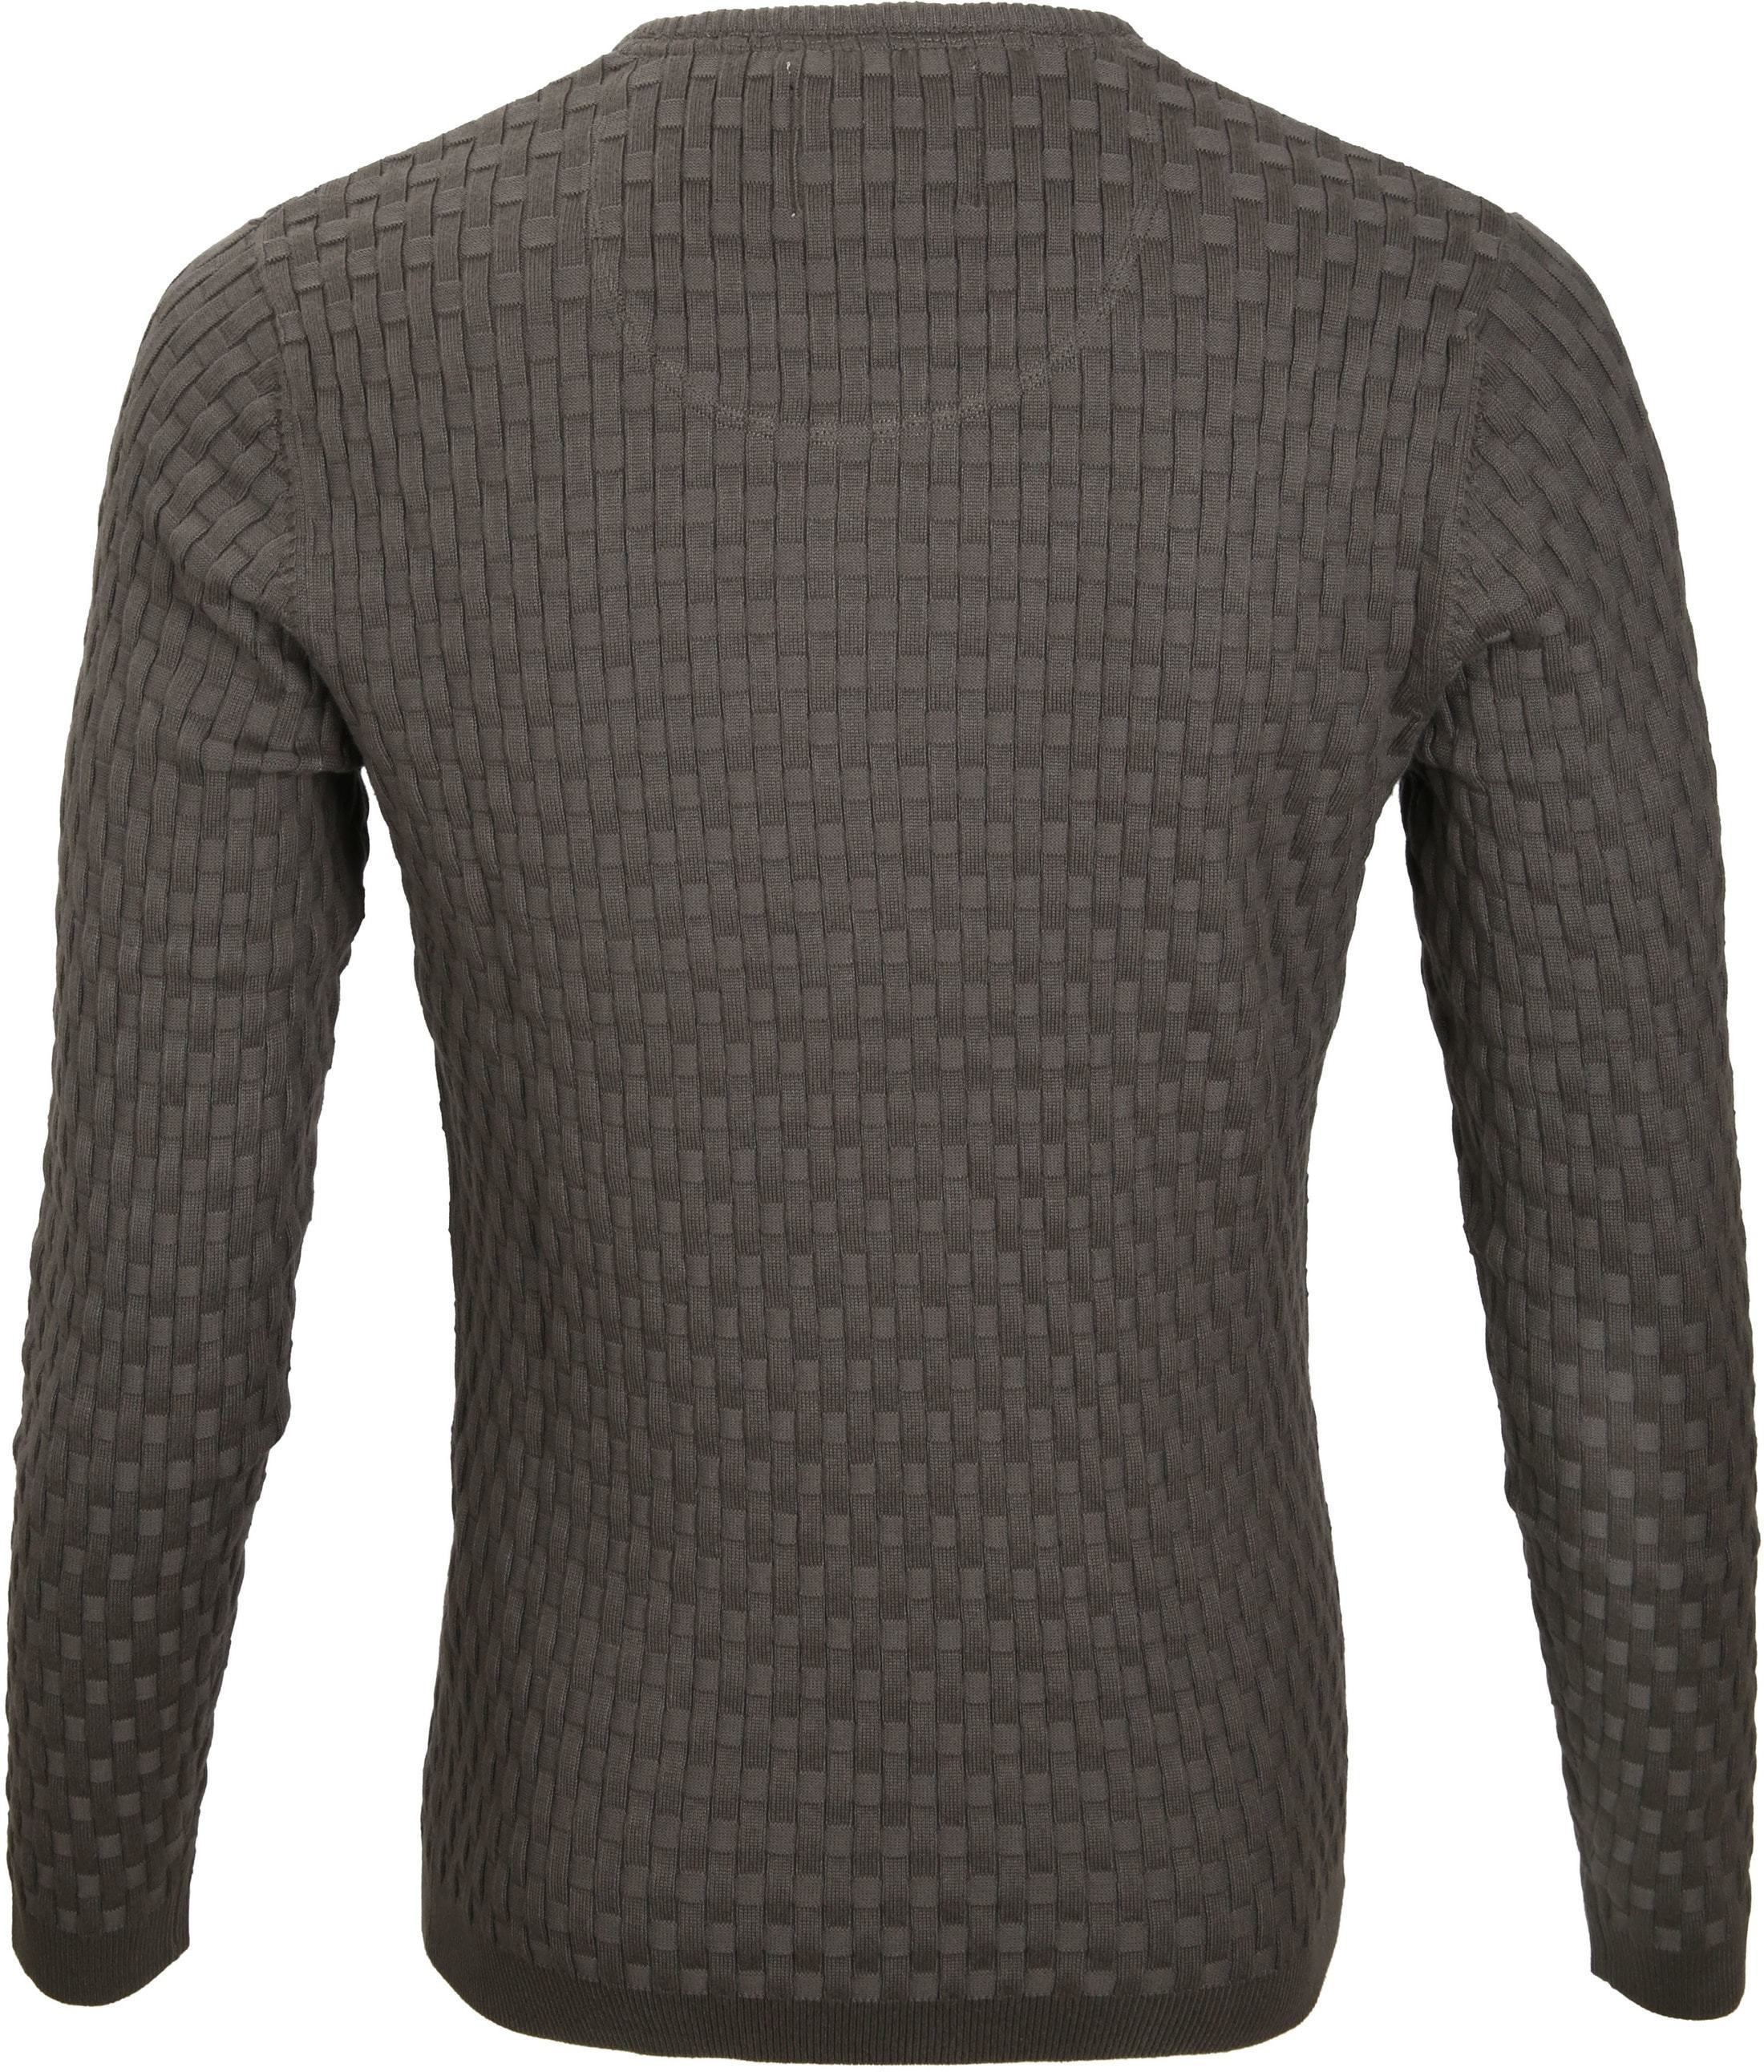 No-Excess Pullover Dark Steel foto 3